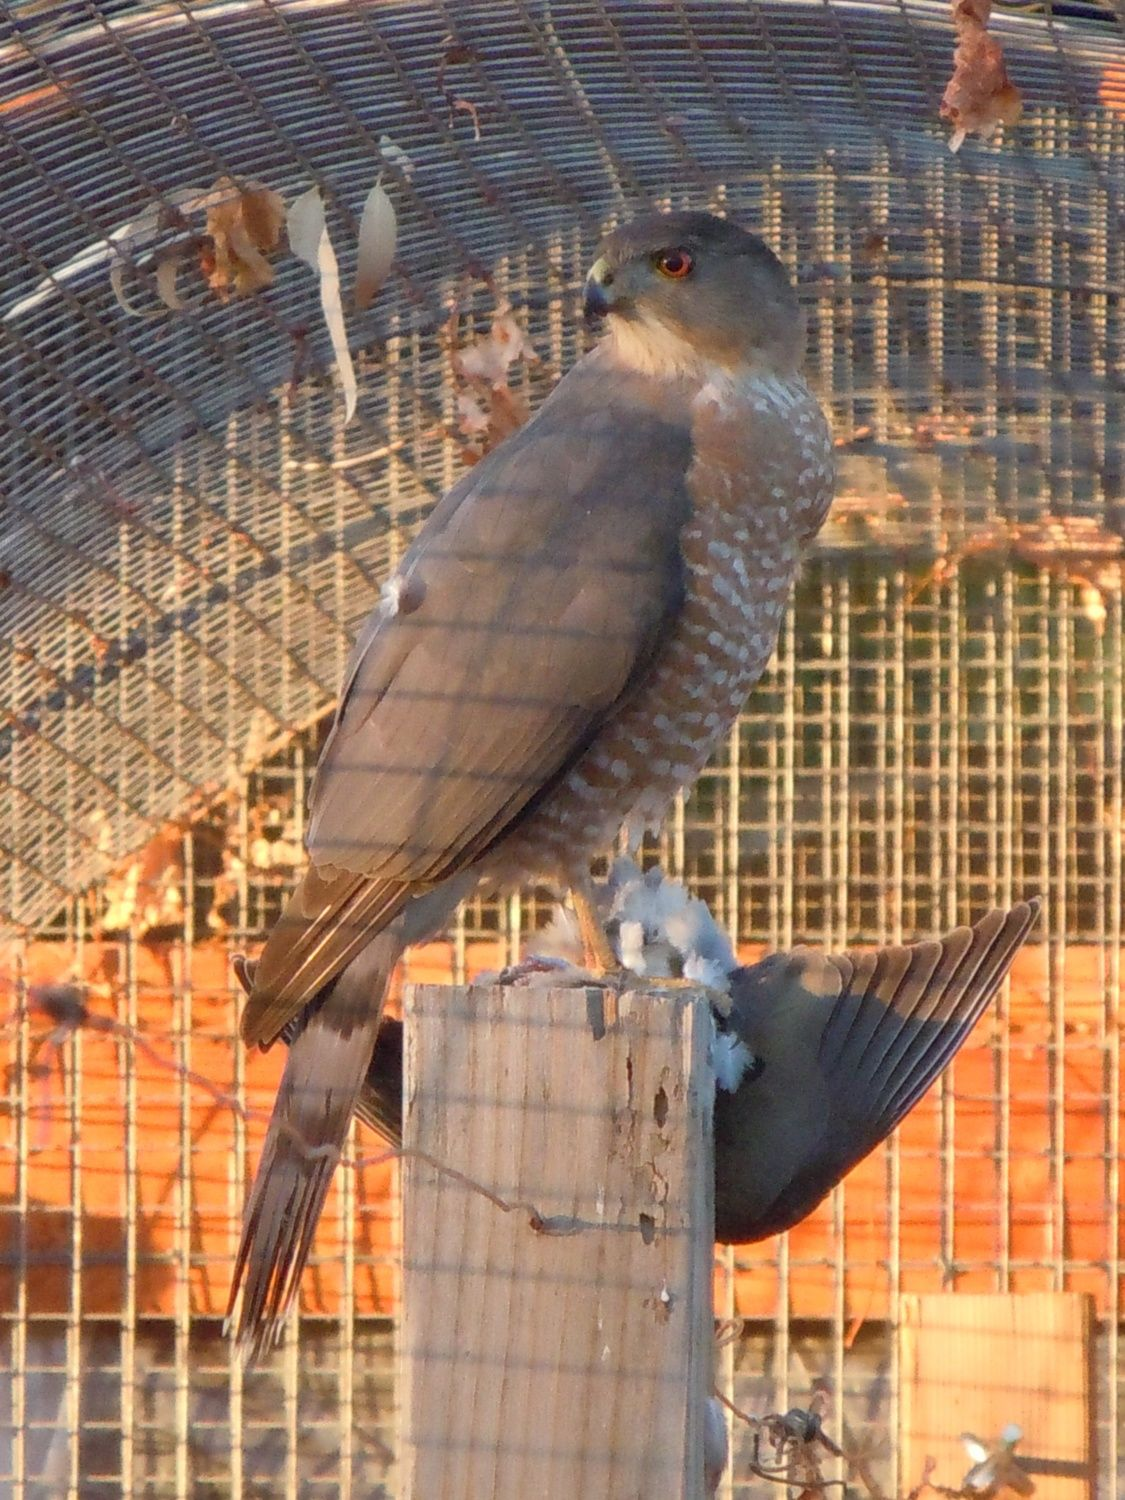 Cooper's hawk in the run, eating a dove